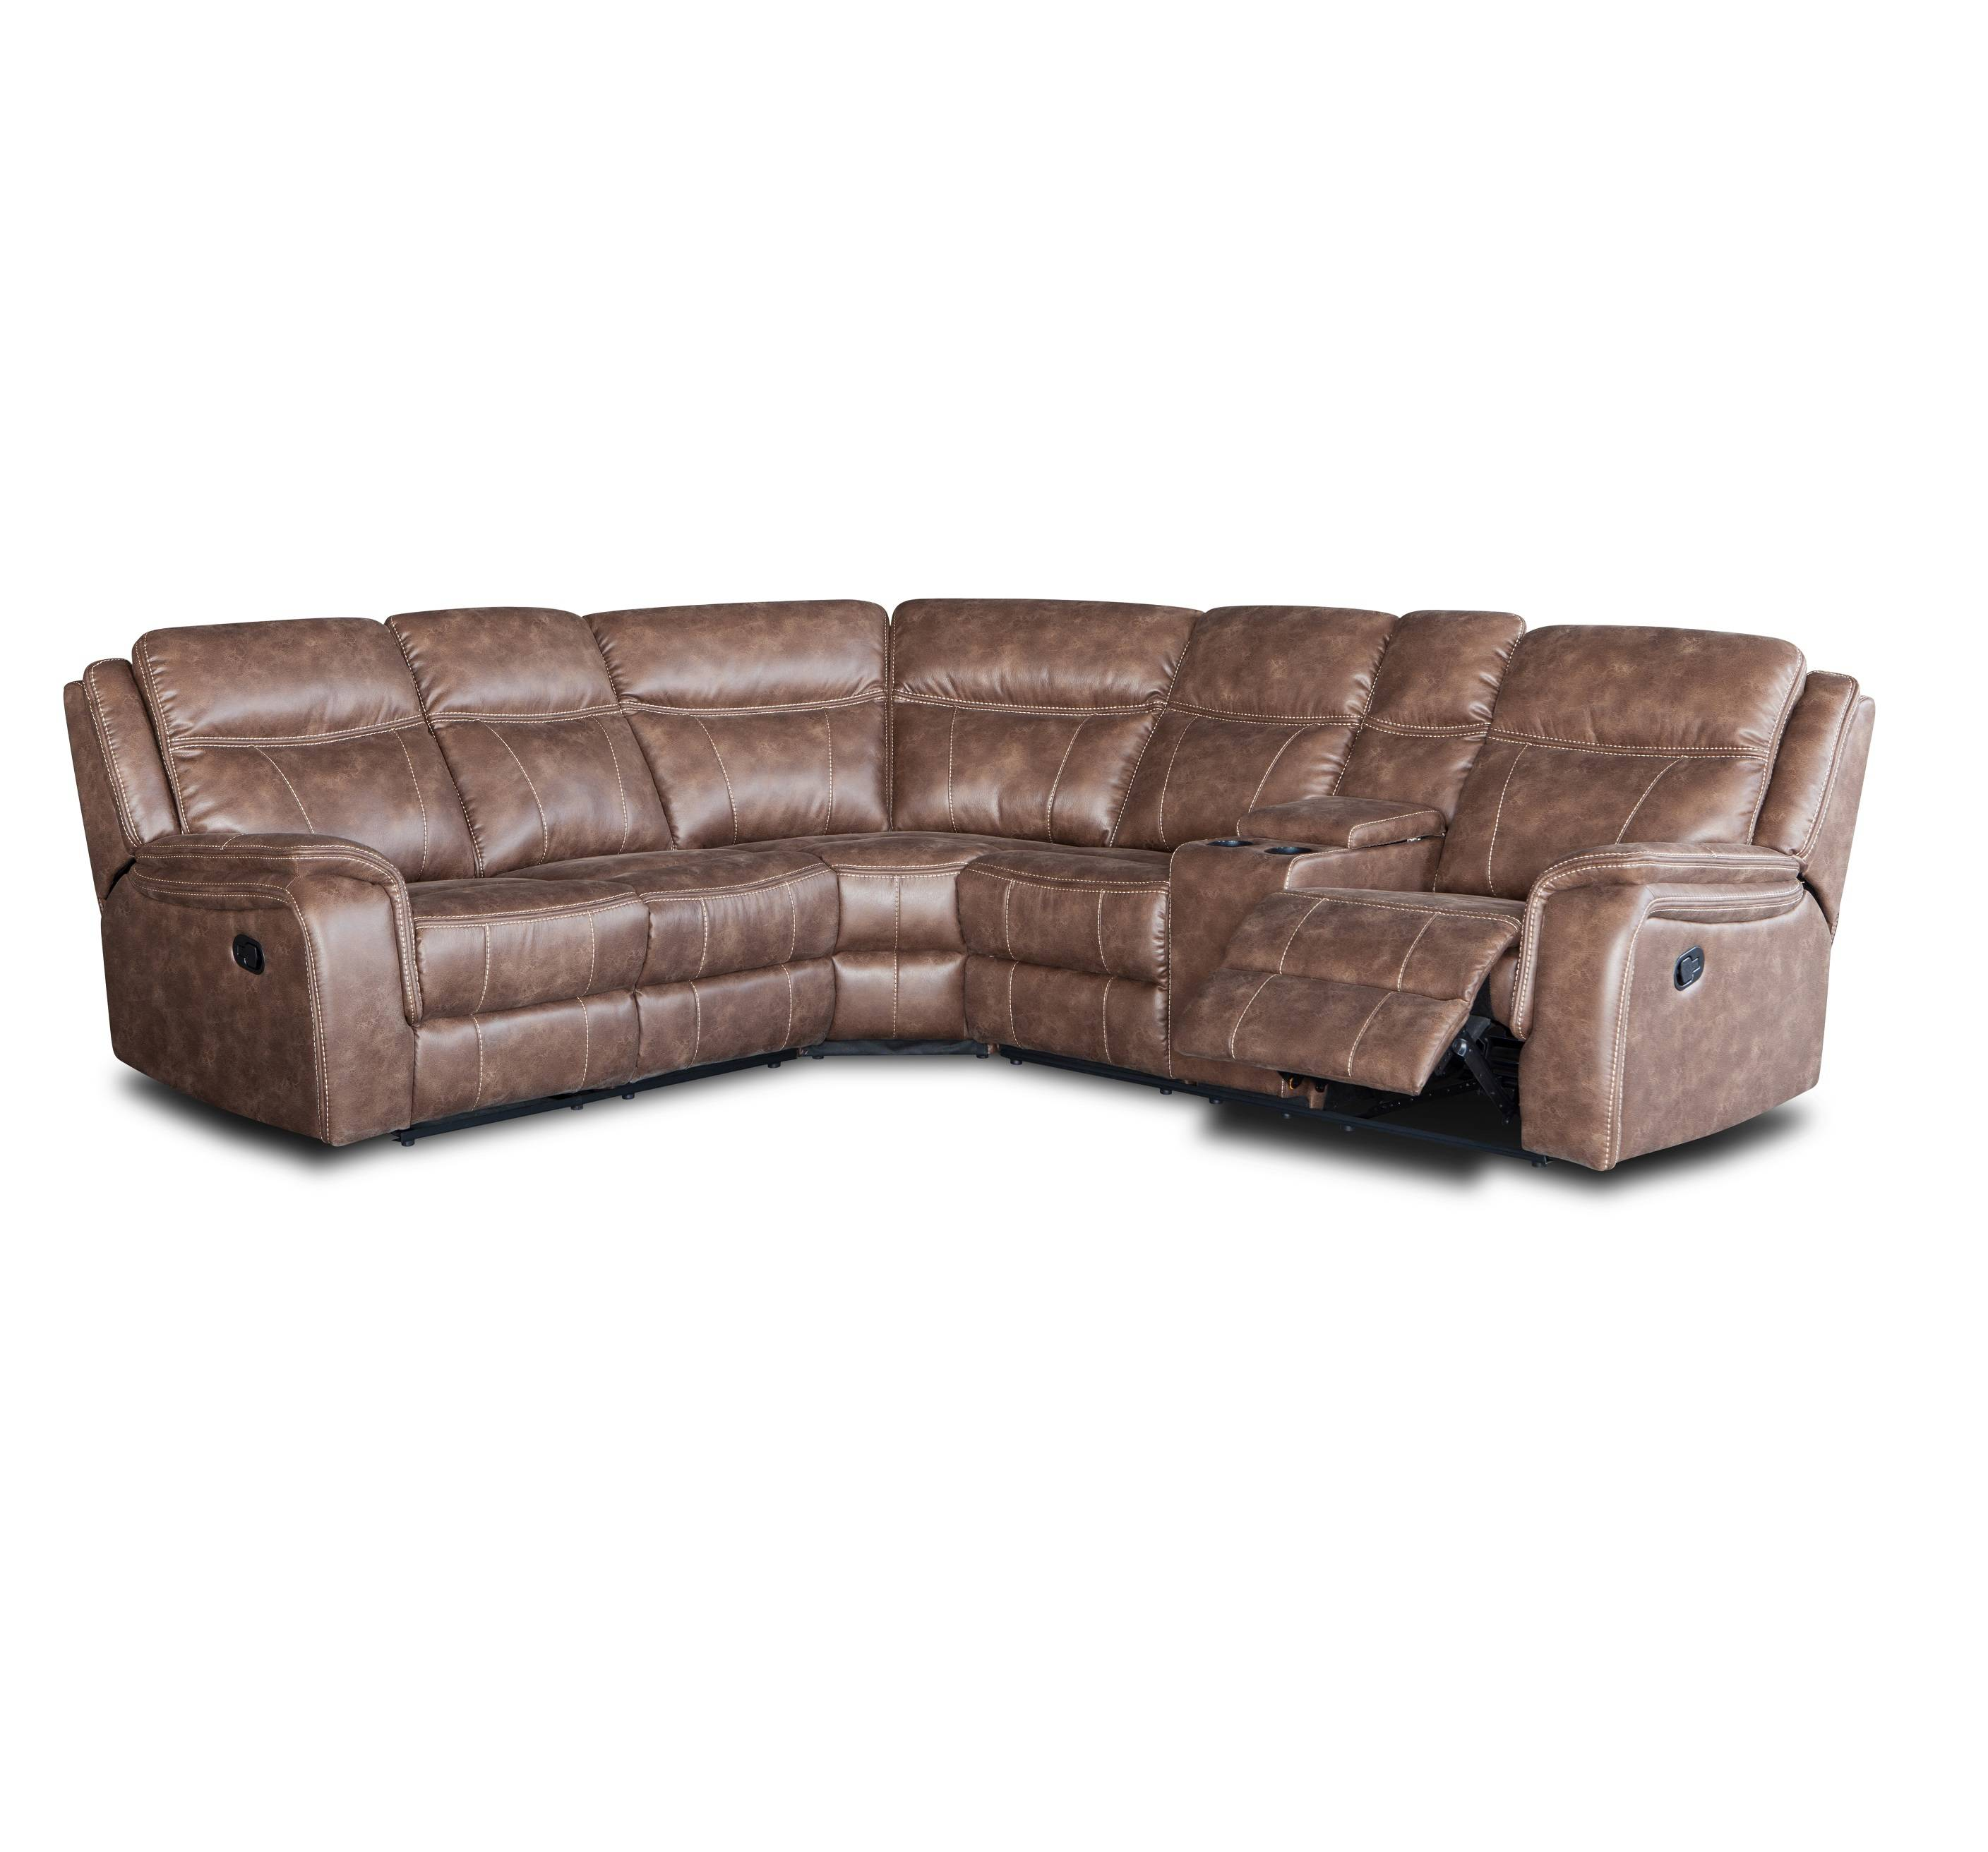 Hot selling home furniture u shaped recliner sectional sofa